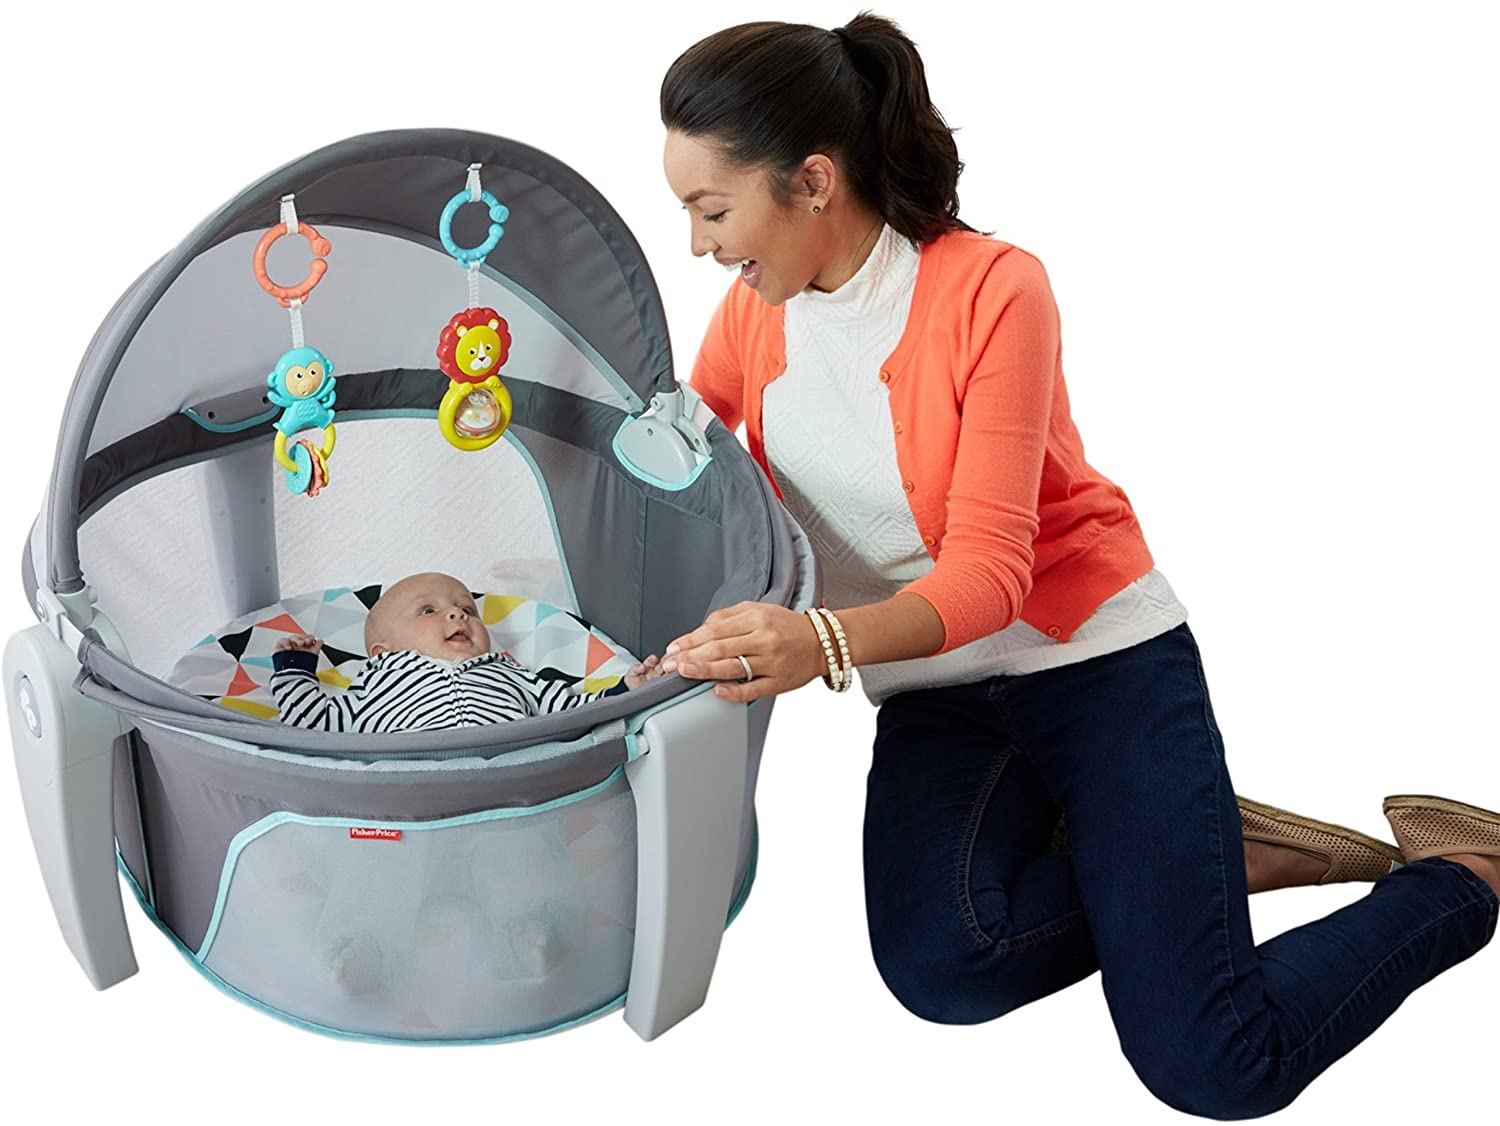 sc 1 st  Amazon.com & Amazon.com : Fisher-Price On-The-Go Baby Dome White : Baby